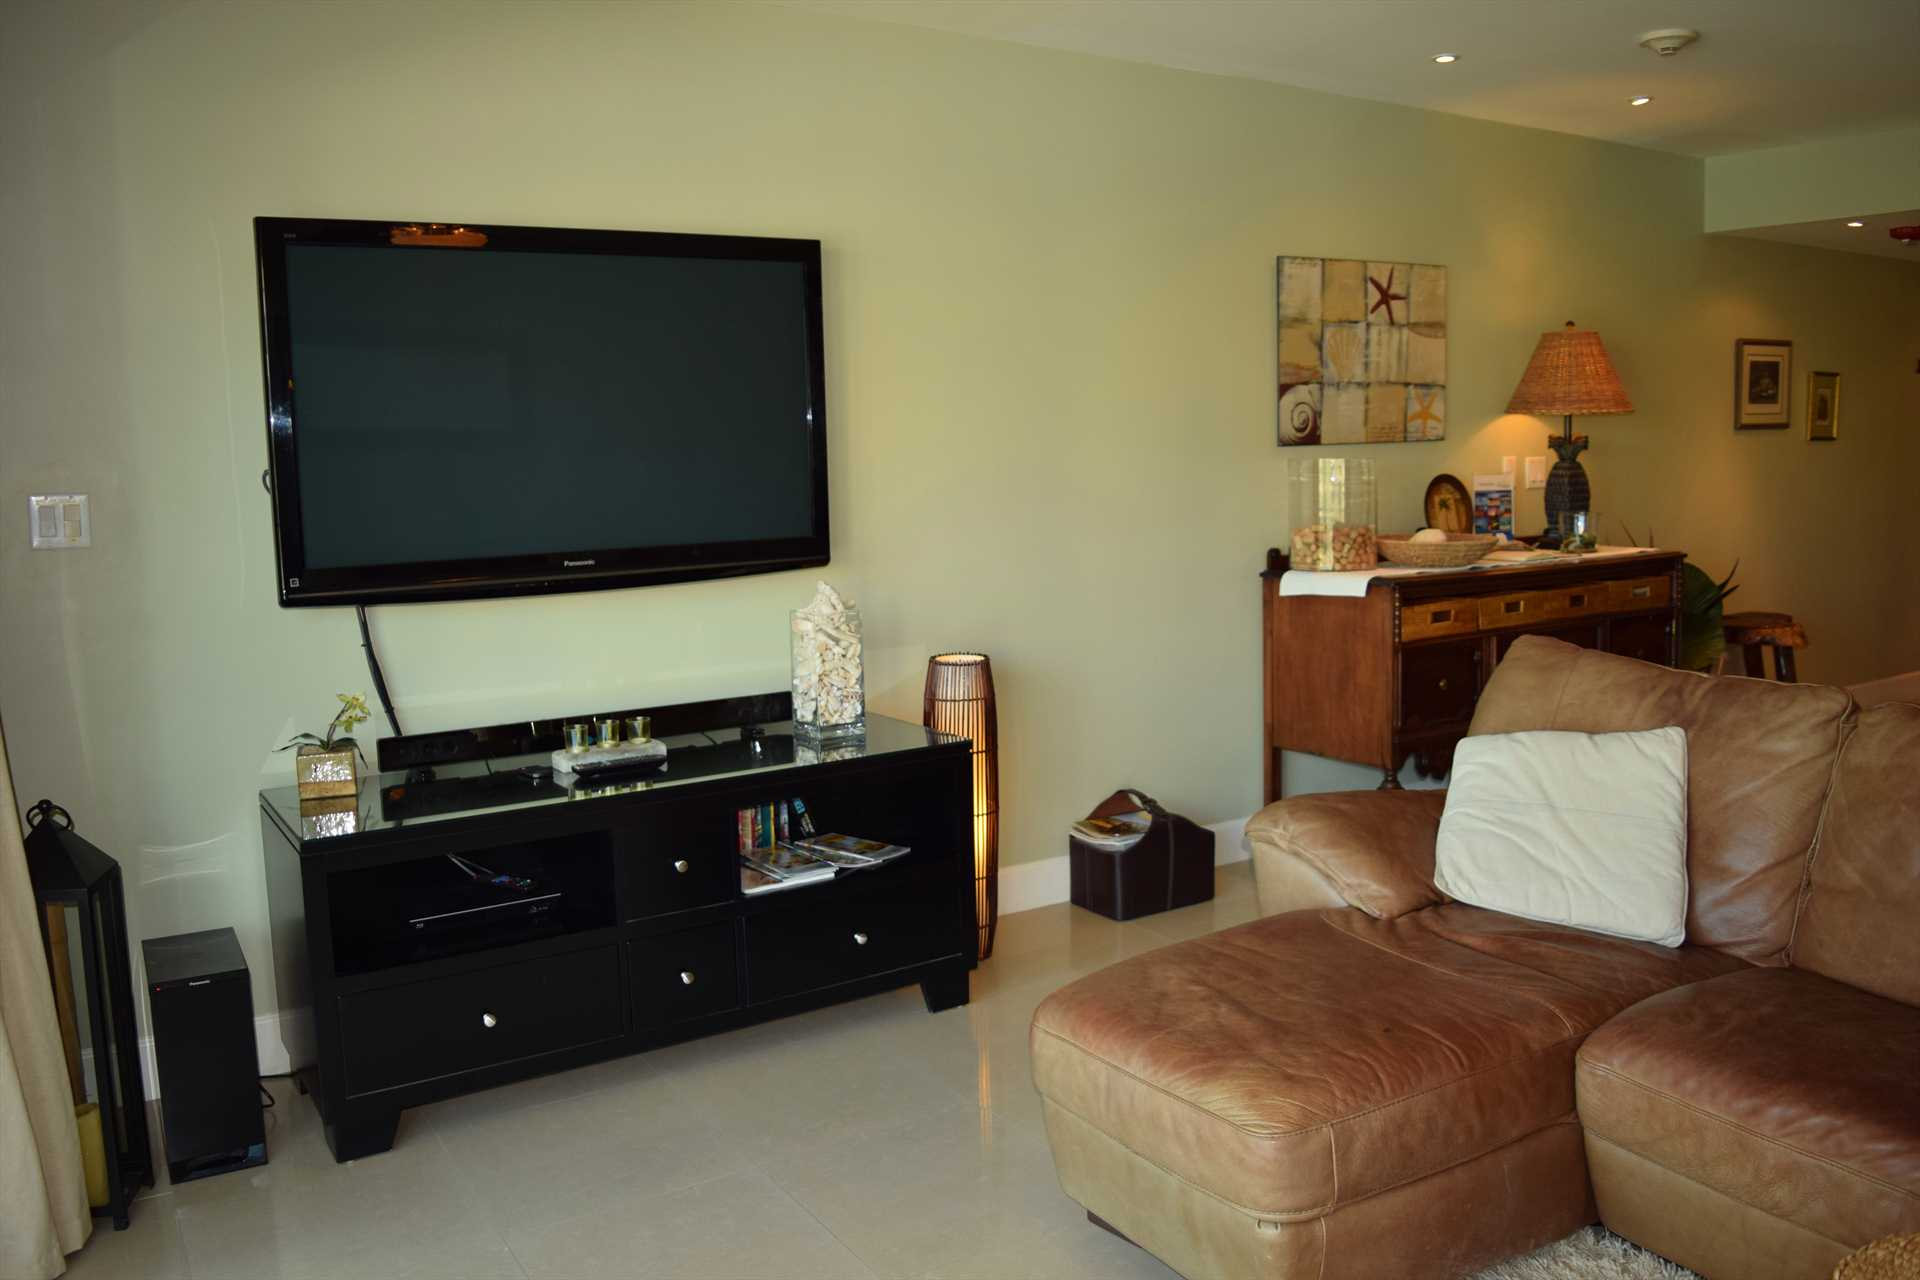 54'flat screen HDTV affords wonderful hours of entertainment